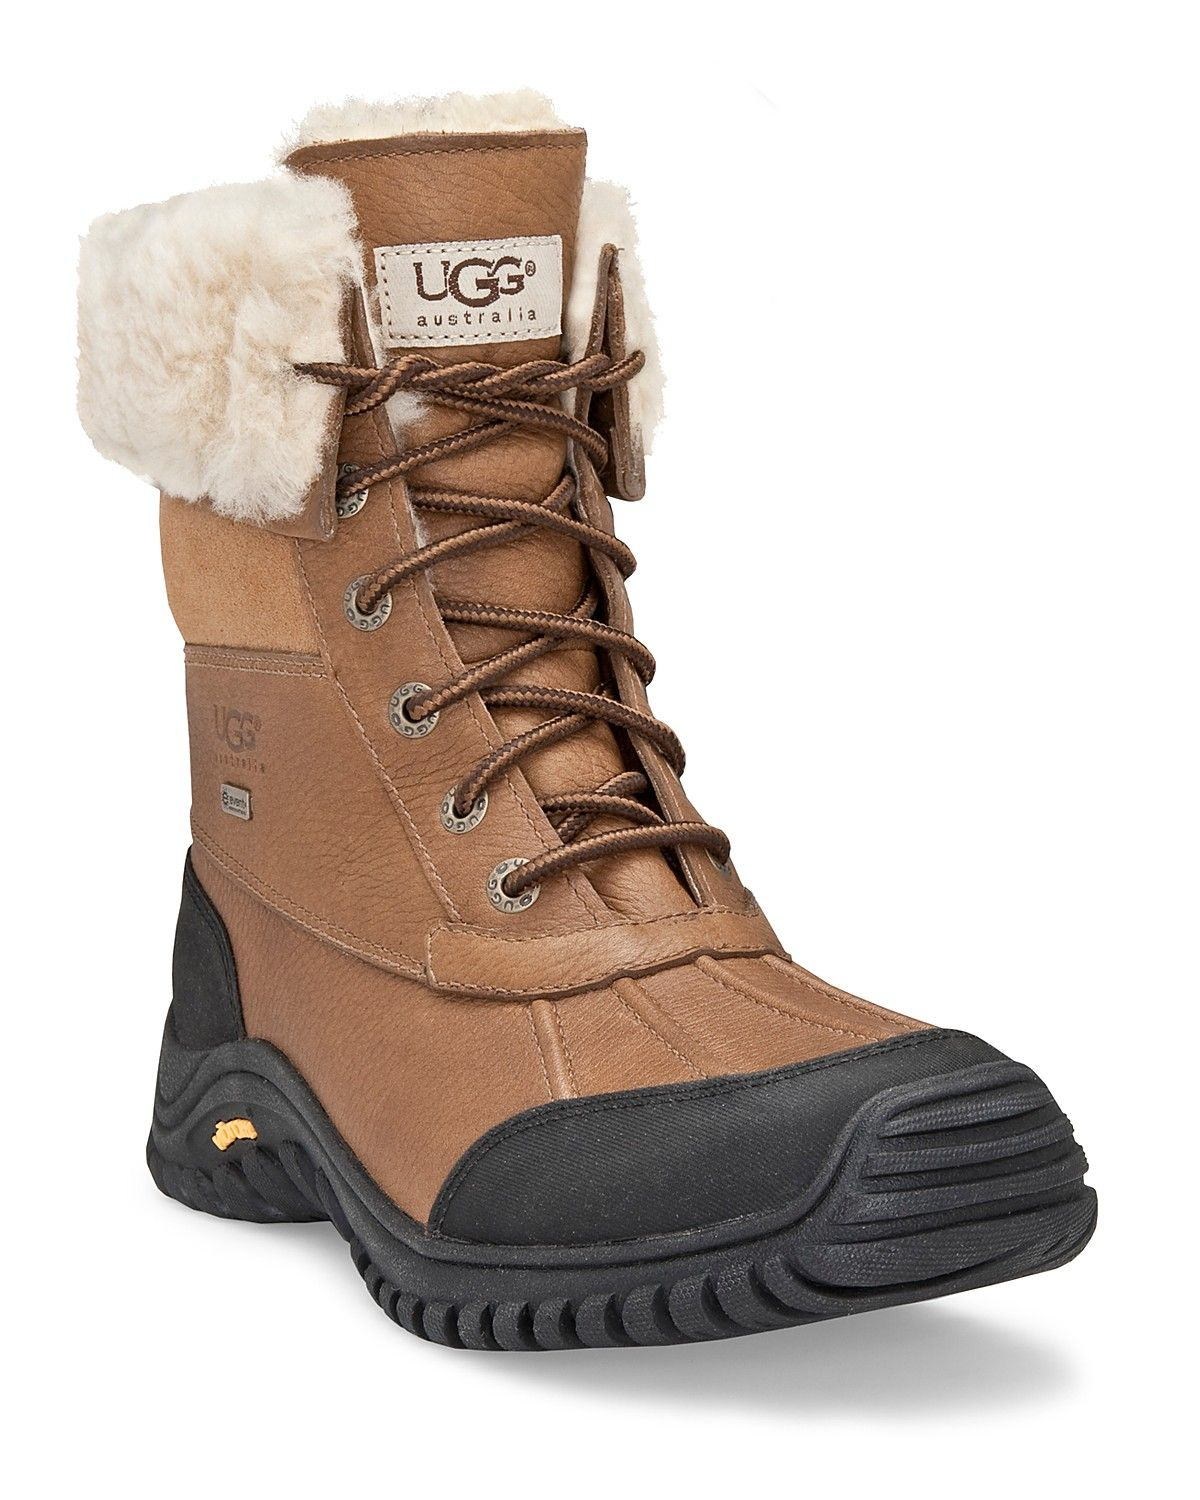 snowy style courtesy of ugg these suede boots feature a frill of